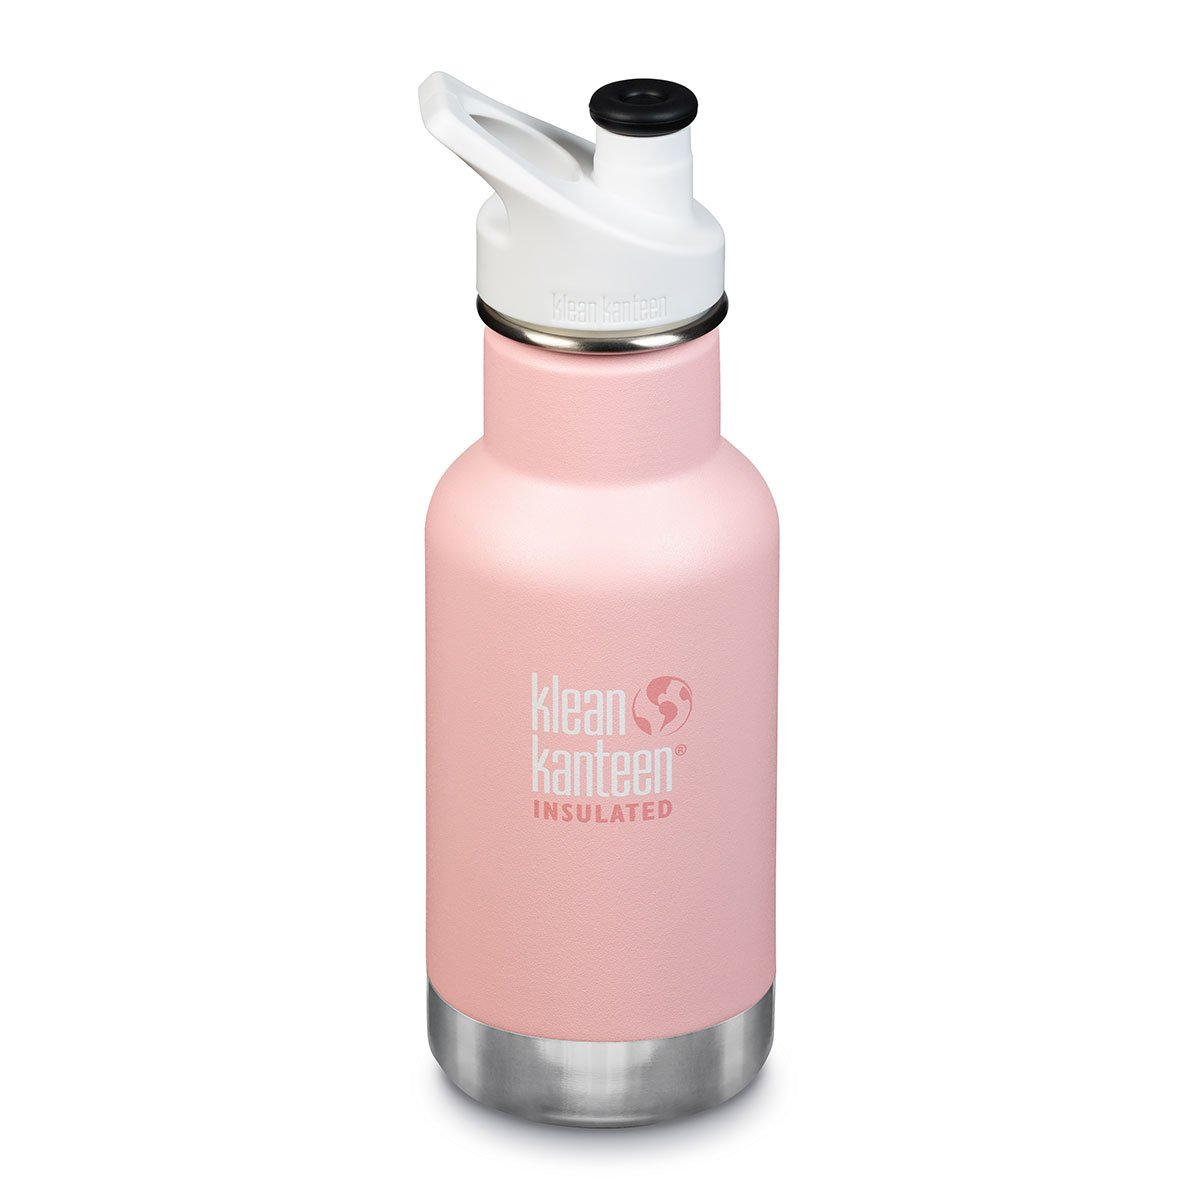 Klean Kanteen Kids Insulated Drink Bottle 12oz Klean Kanteen Water Bottles Ballet Slipper at Little Earth Nest Eco Shop